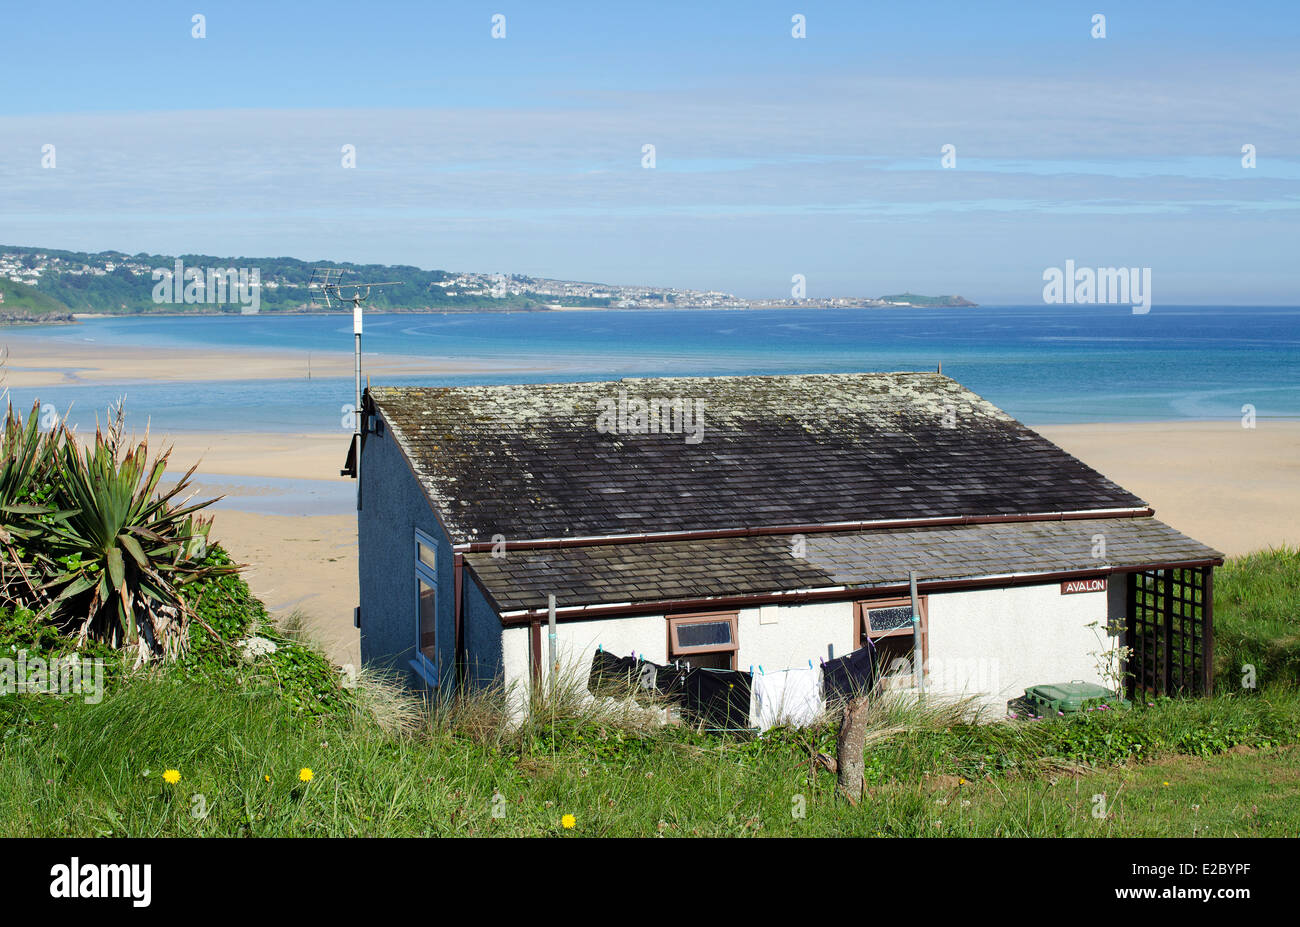 A Chalet overlooking the beach at Hayle in Cornwall, UK - Stock Image